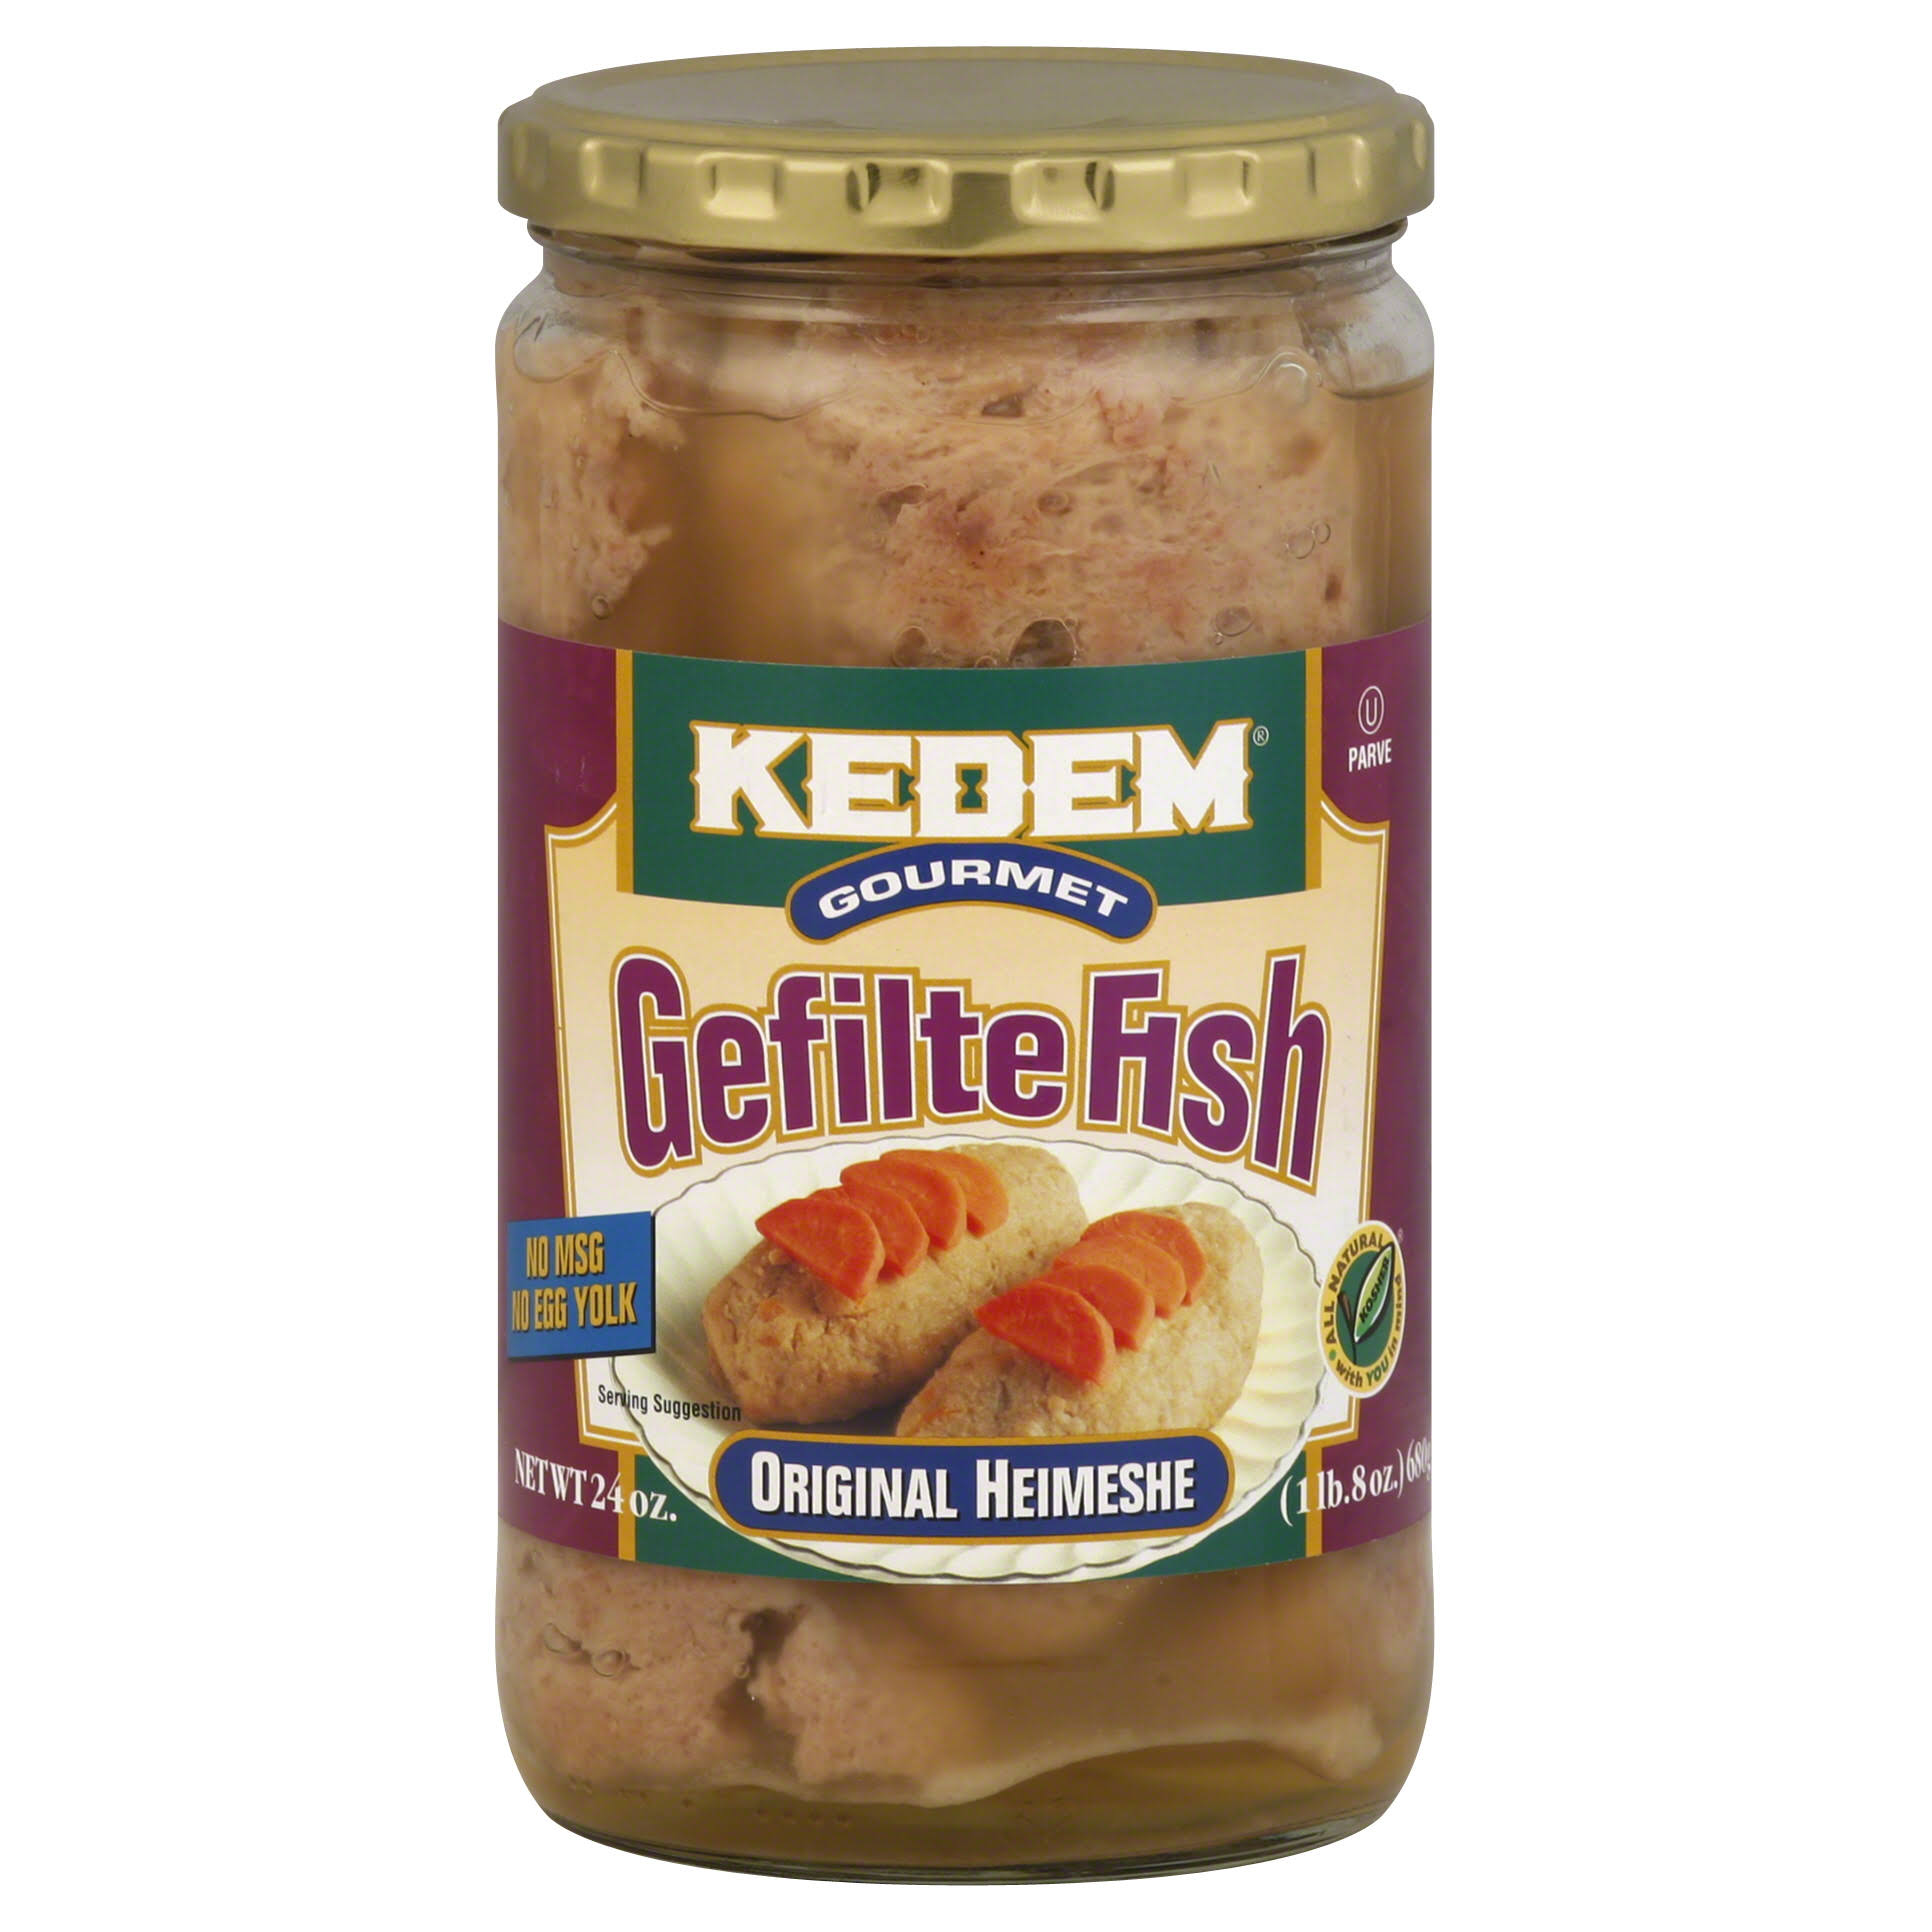 Kedem Gefilte Fish Original Heimeshe - 24oz